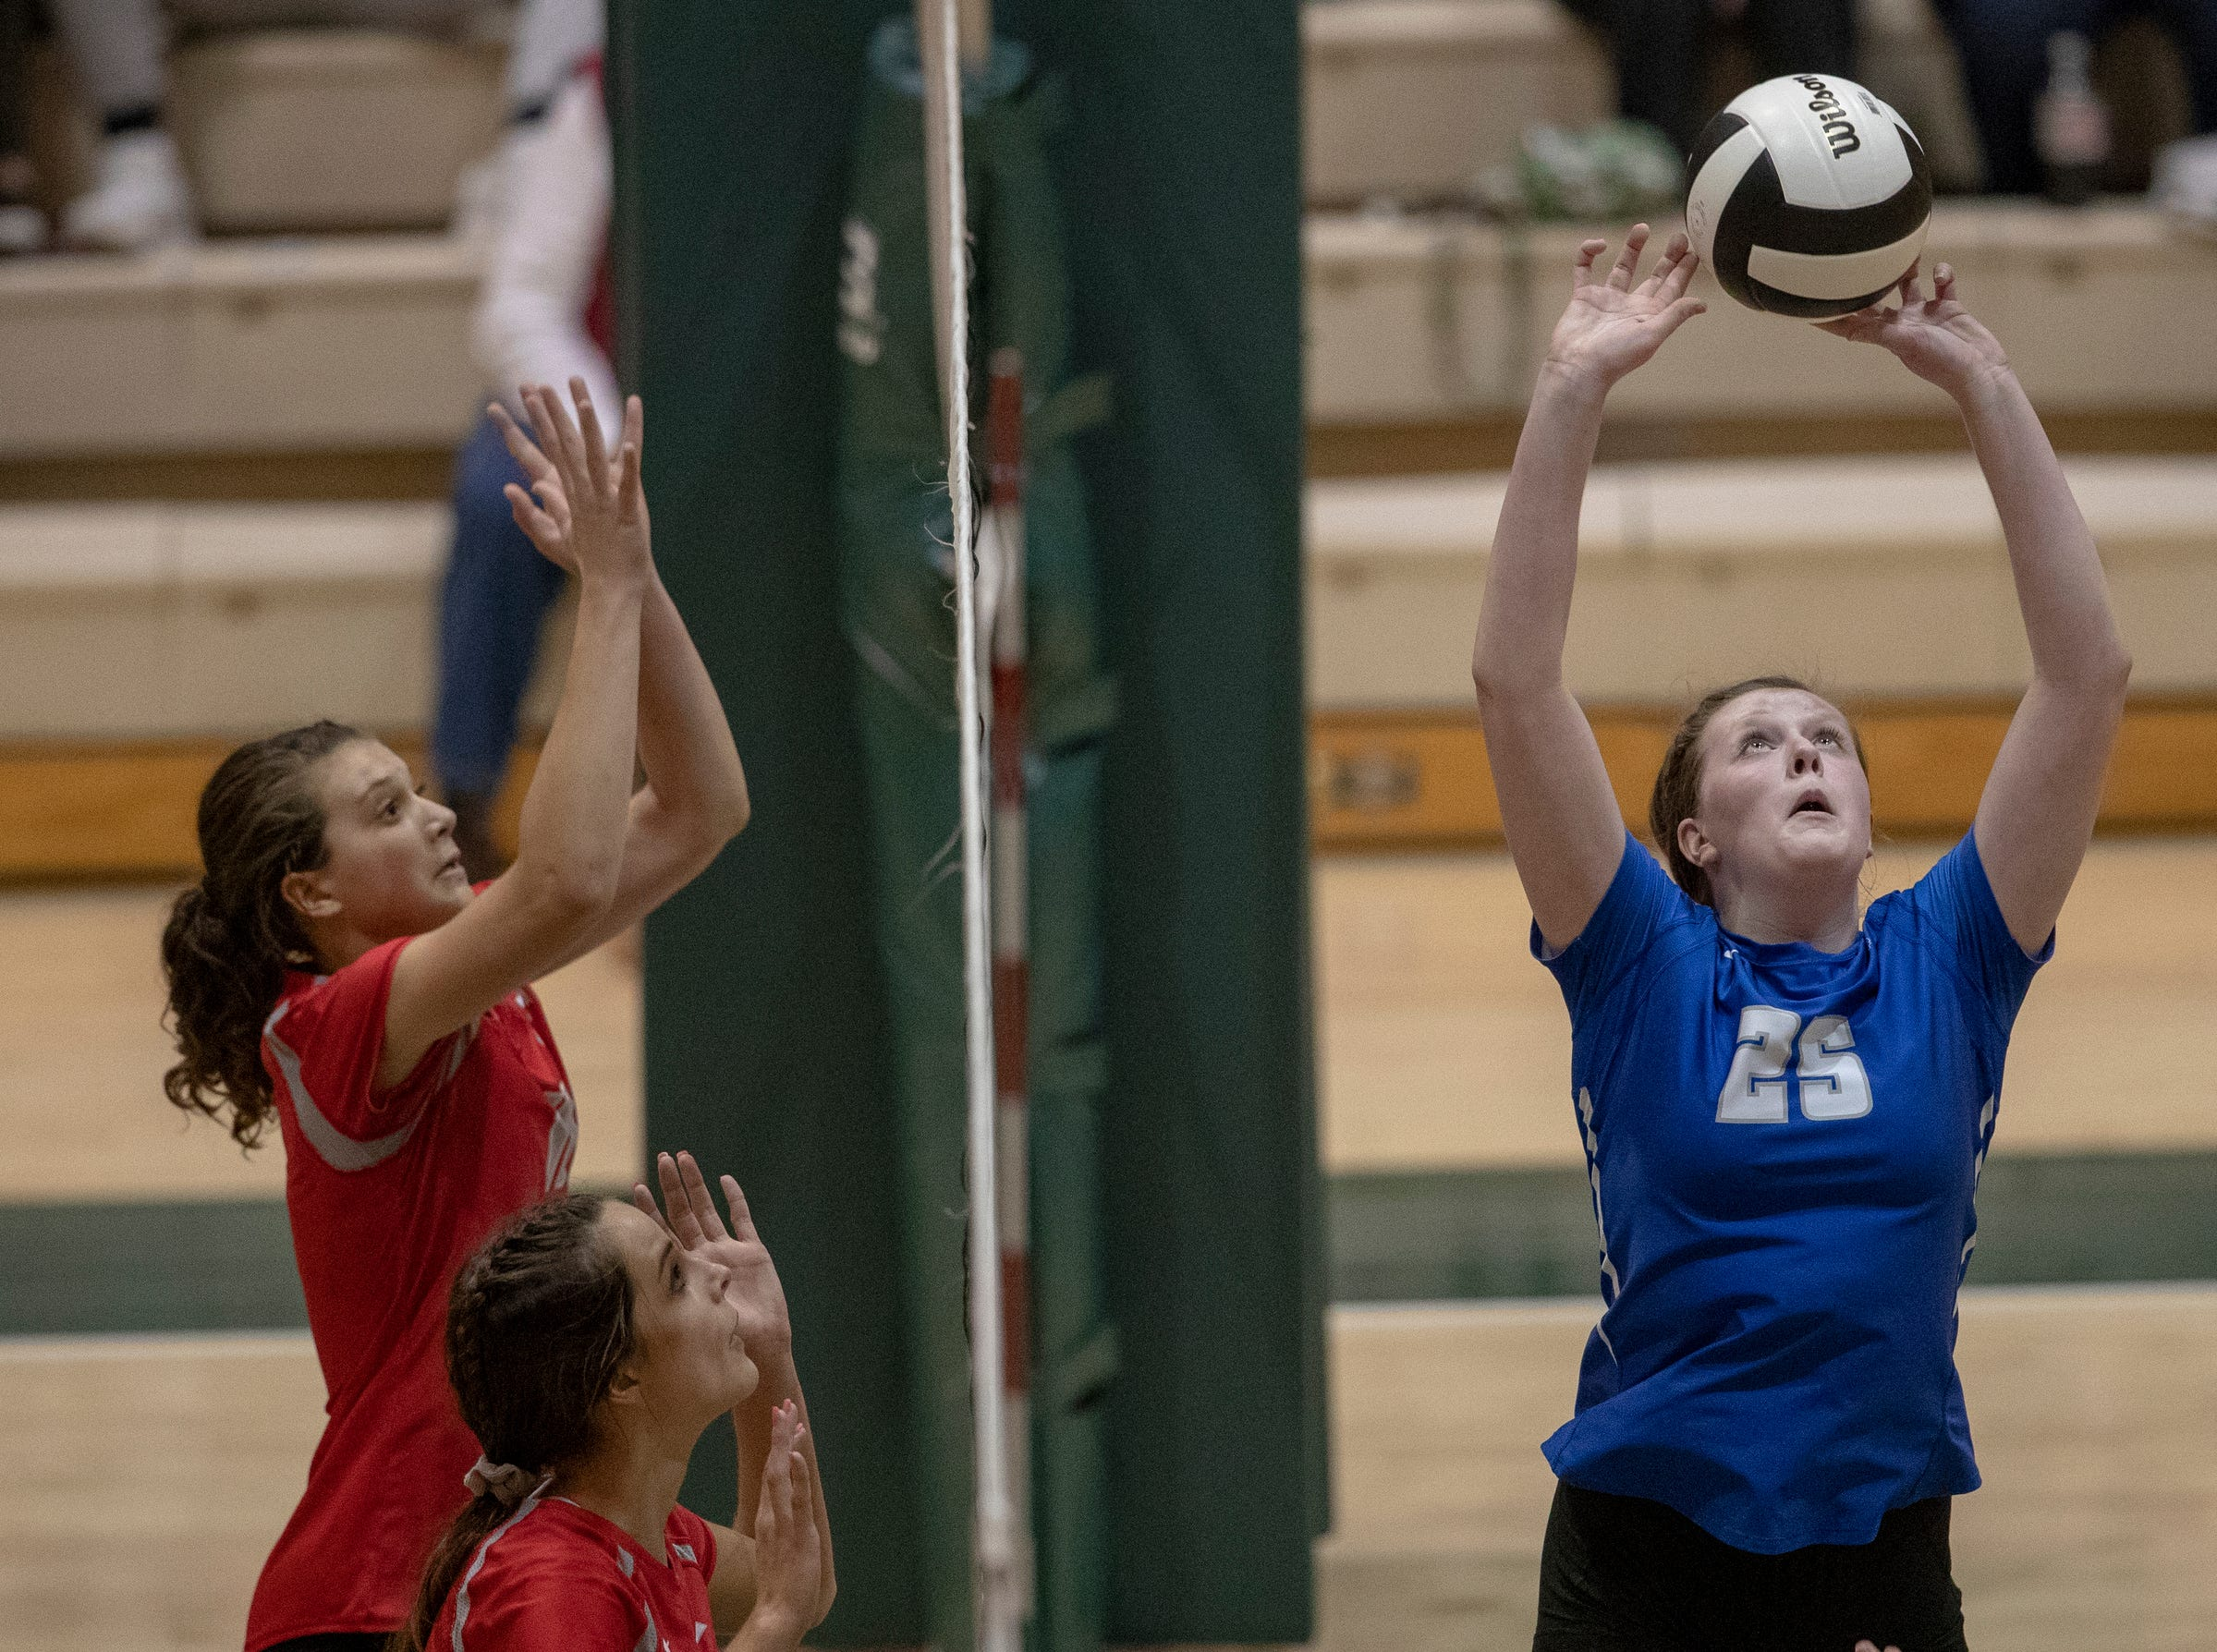 Olivia Phillips of Hamilton Southeastern High School sets a ball for a teammate as they play Fishers High School, losing in three straight sets in the first round of the volleyball sectional at Westfield High School, Westfield, Thursday, Oct. 11, 2018. The win matches them up with Westfield High School for a game on Saturday morning at 11a.m.